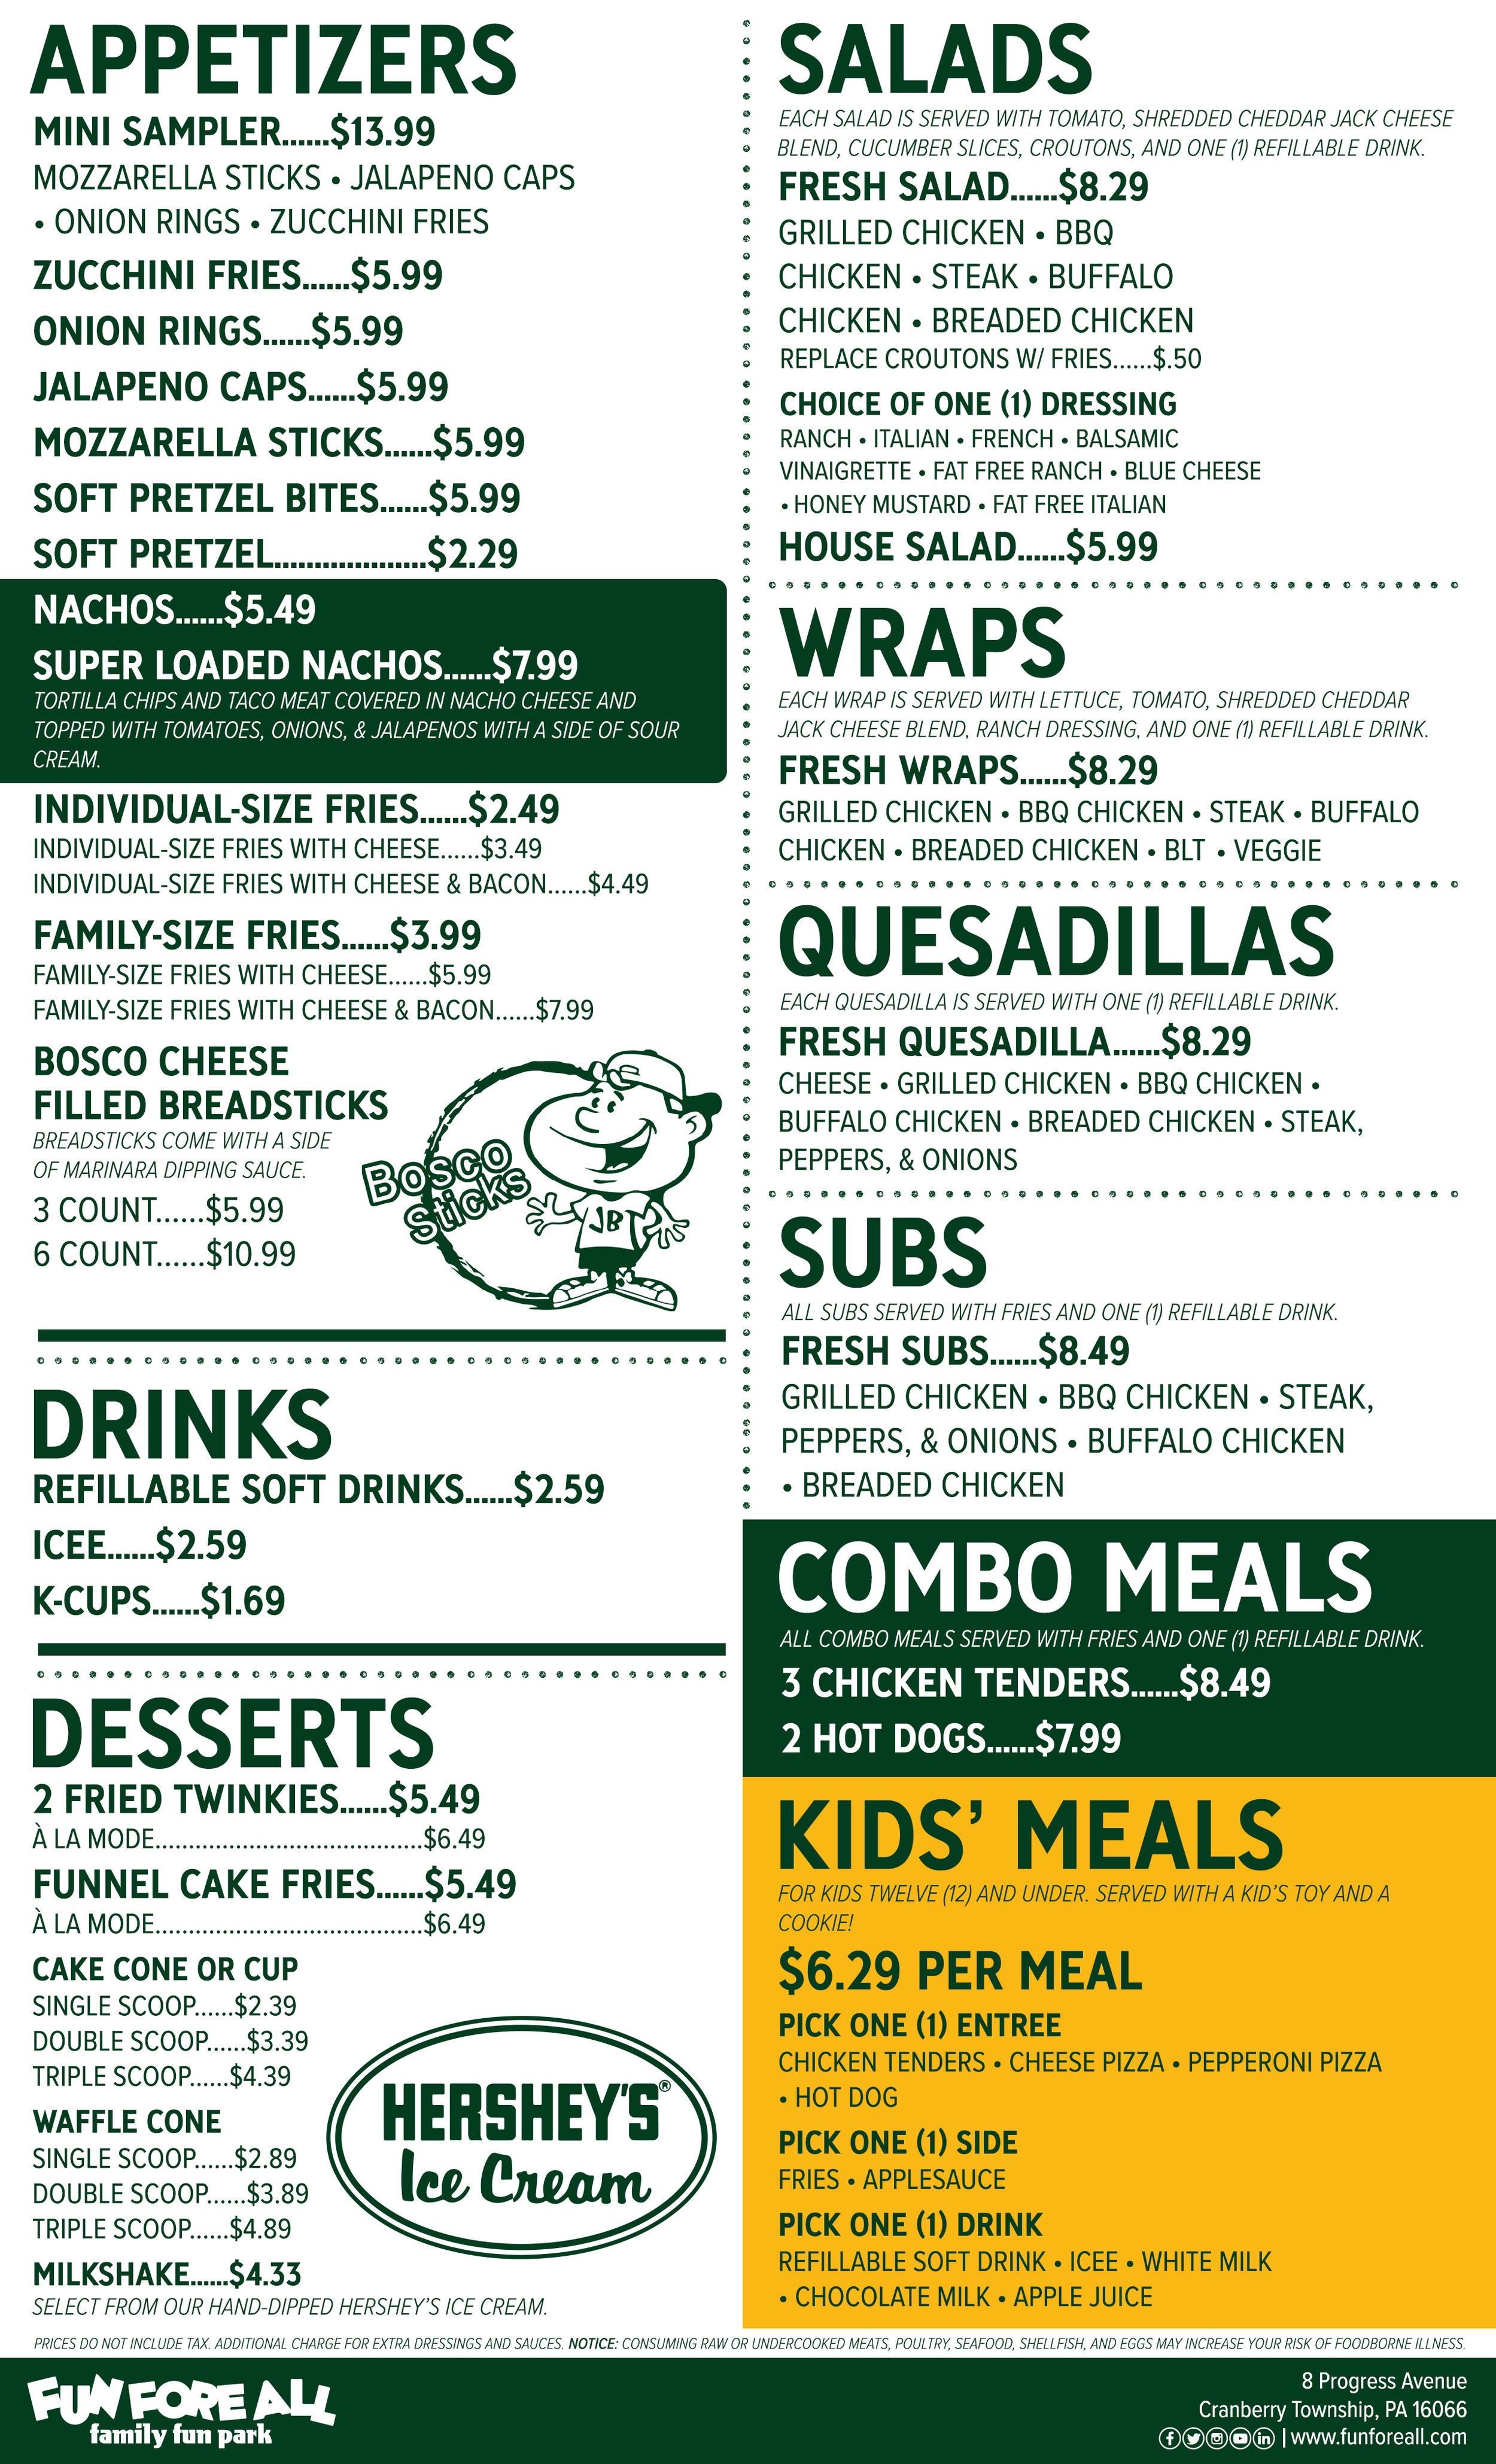 FUN FORE ALL EATERY MENU - BACK (2019)